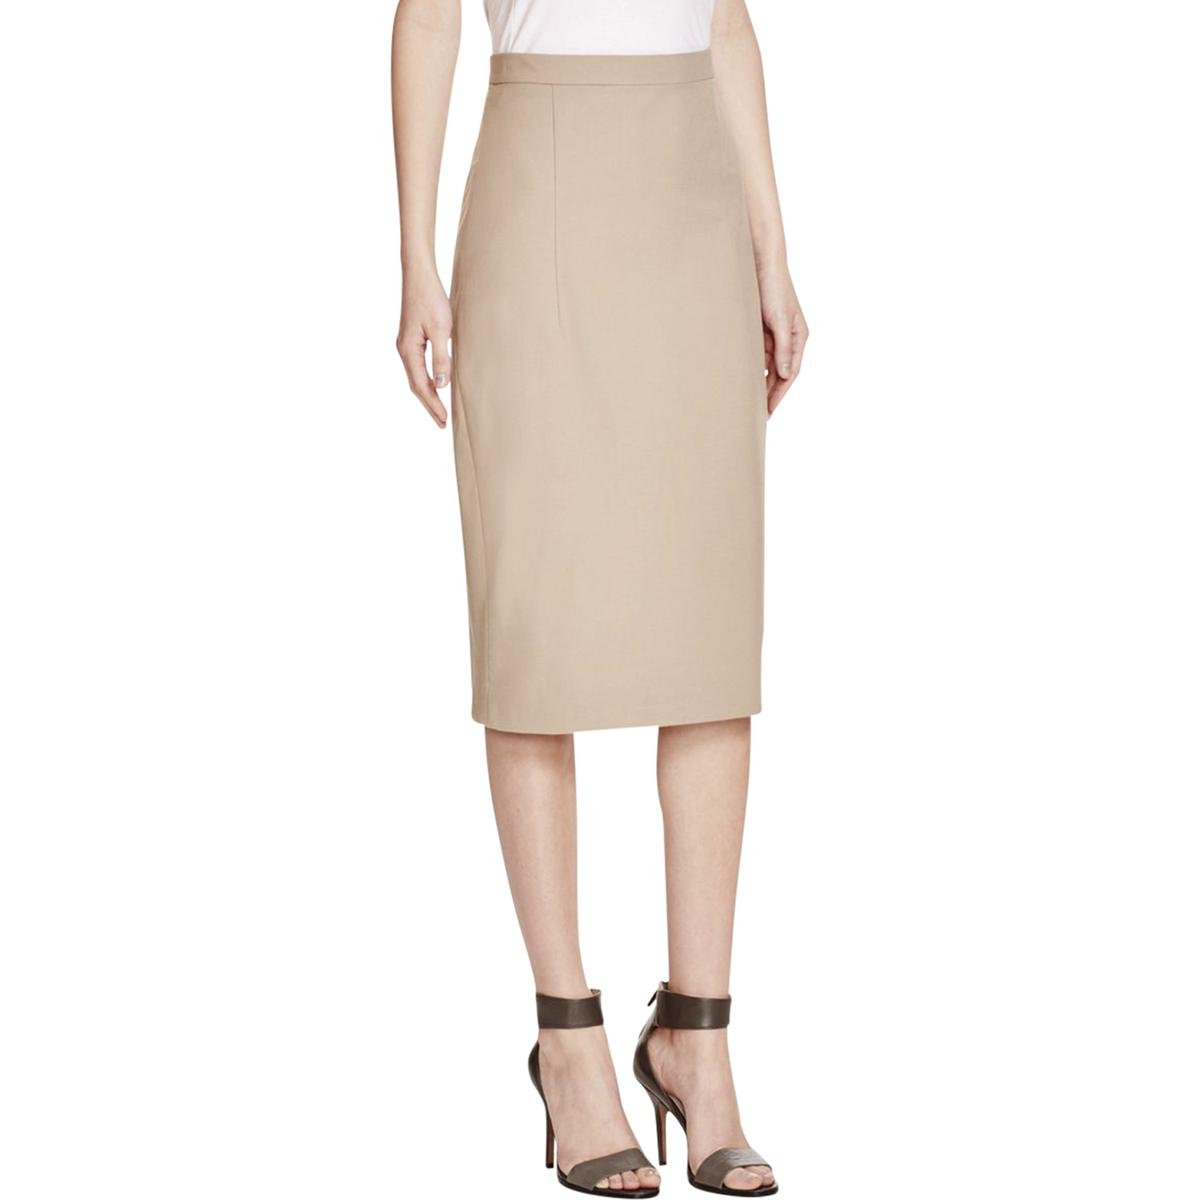 Theory Womens Pleated Slit Pencil Skirt Tan 6